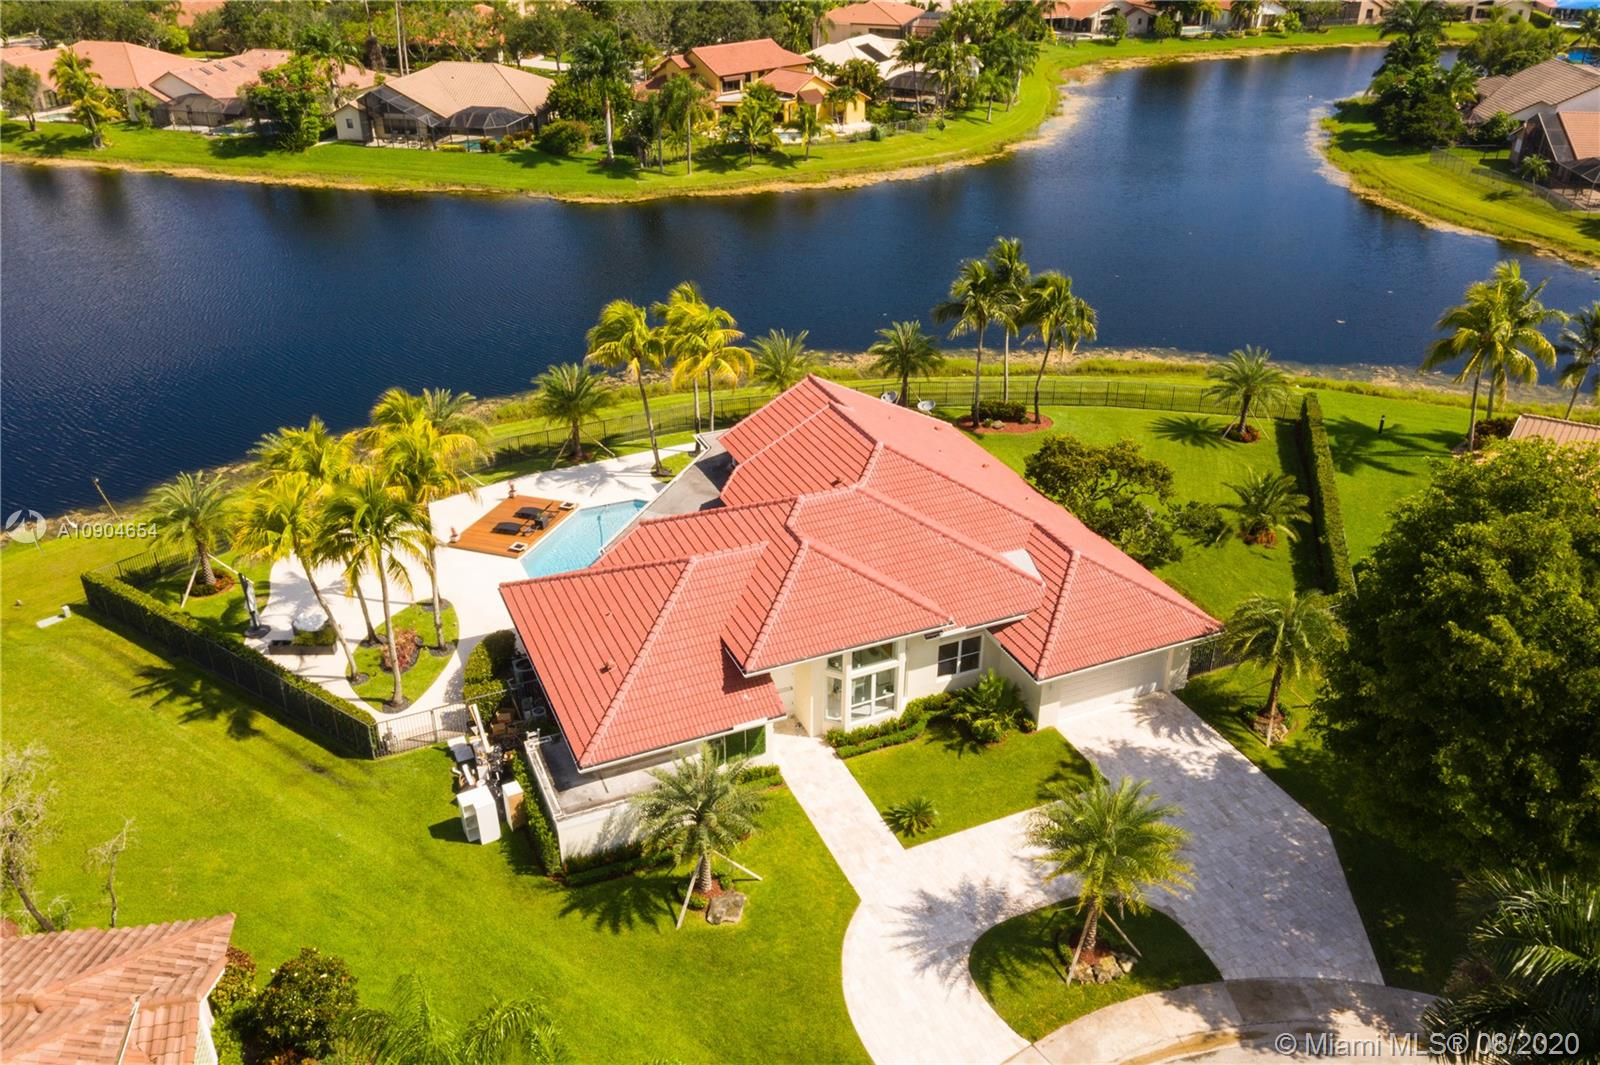 A BEAUTIFUL HOME FOR SALE IN TEQUESTA!! Come fall in love with this stunning ONE STORY, 4 BEDS 4 baths home with a foyer entrance, and 2 CARS GARAGE plus circular drive. NEW ROOF, NEW APPLIANCES as well as a large kitchen with an island modern layout. In addition, there is a beautiful FENCED yard and space for FRUIT TREES, POOL plus amazing DECK WITH IMMACULATE LAKE VIEW. The Tequesta GATED Community is next to paradise Peace Mound Park. READY TO MOVE IN